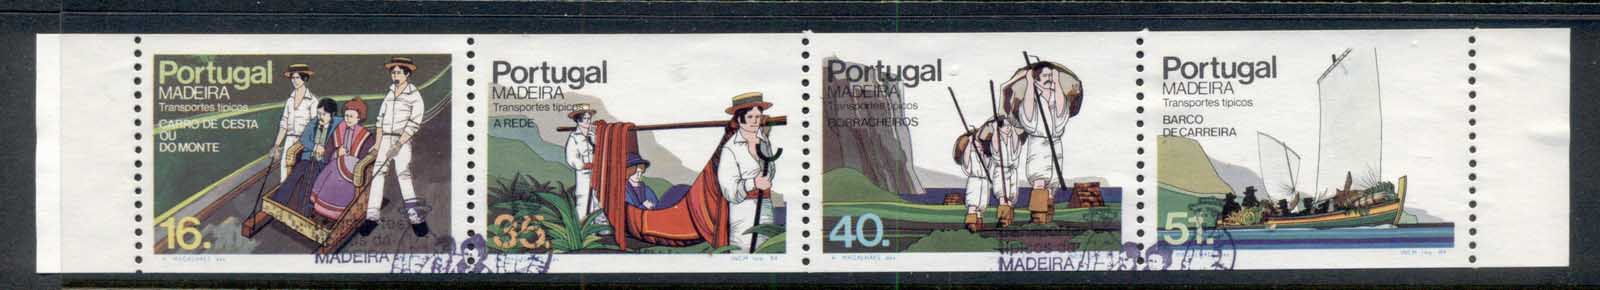 Madeira 1984 Traditional Means of Transportation booklet pane FU